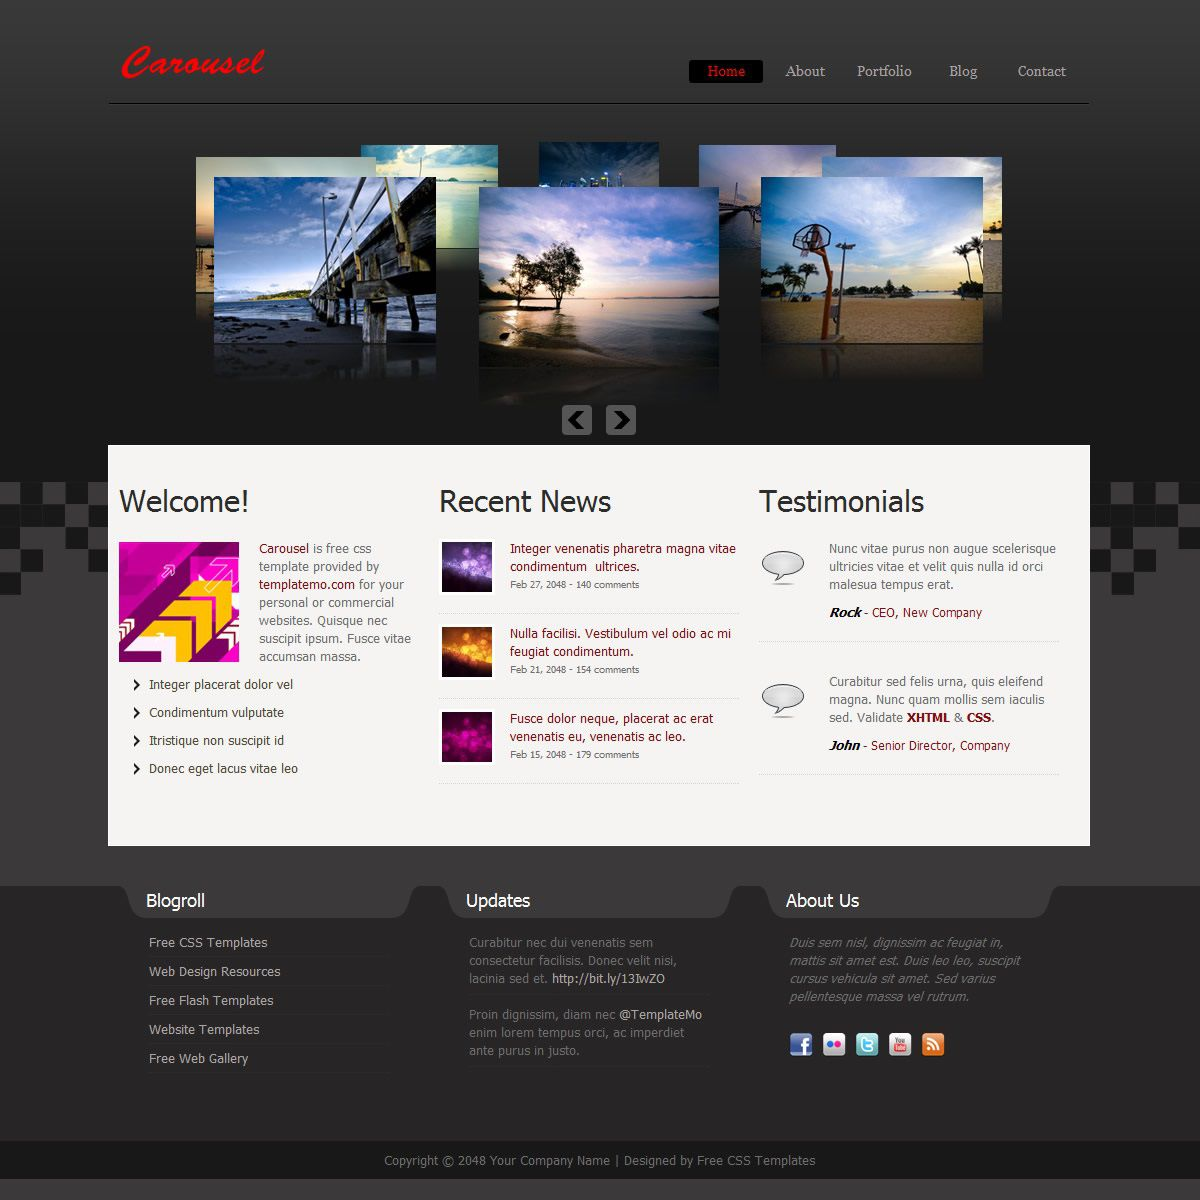 009 Phenomenal Free Website Template Download Html And Cs Jquery Slider High Def Full